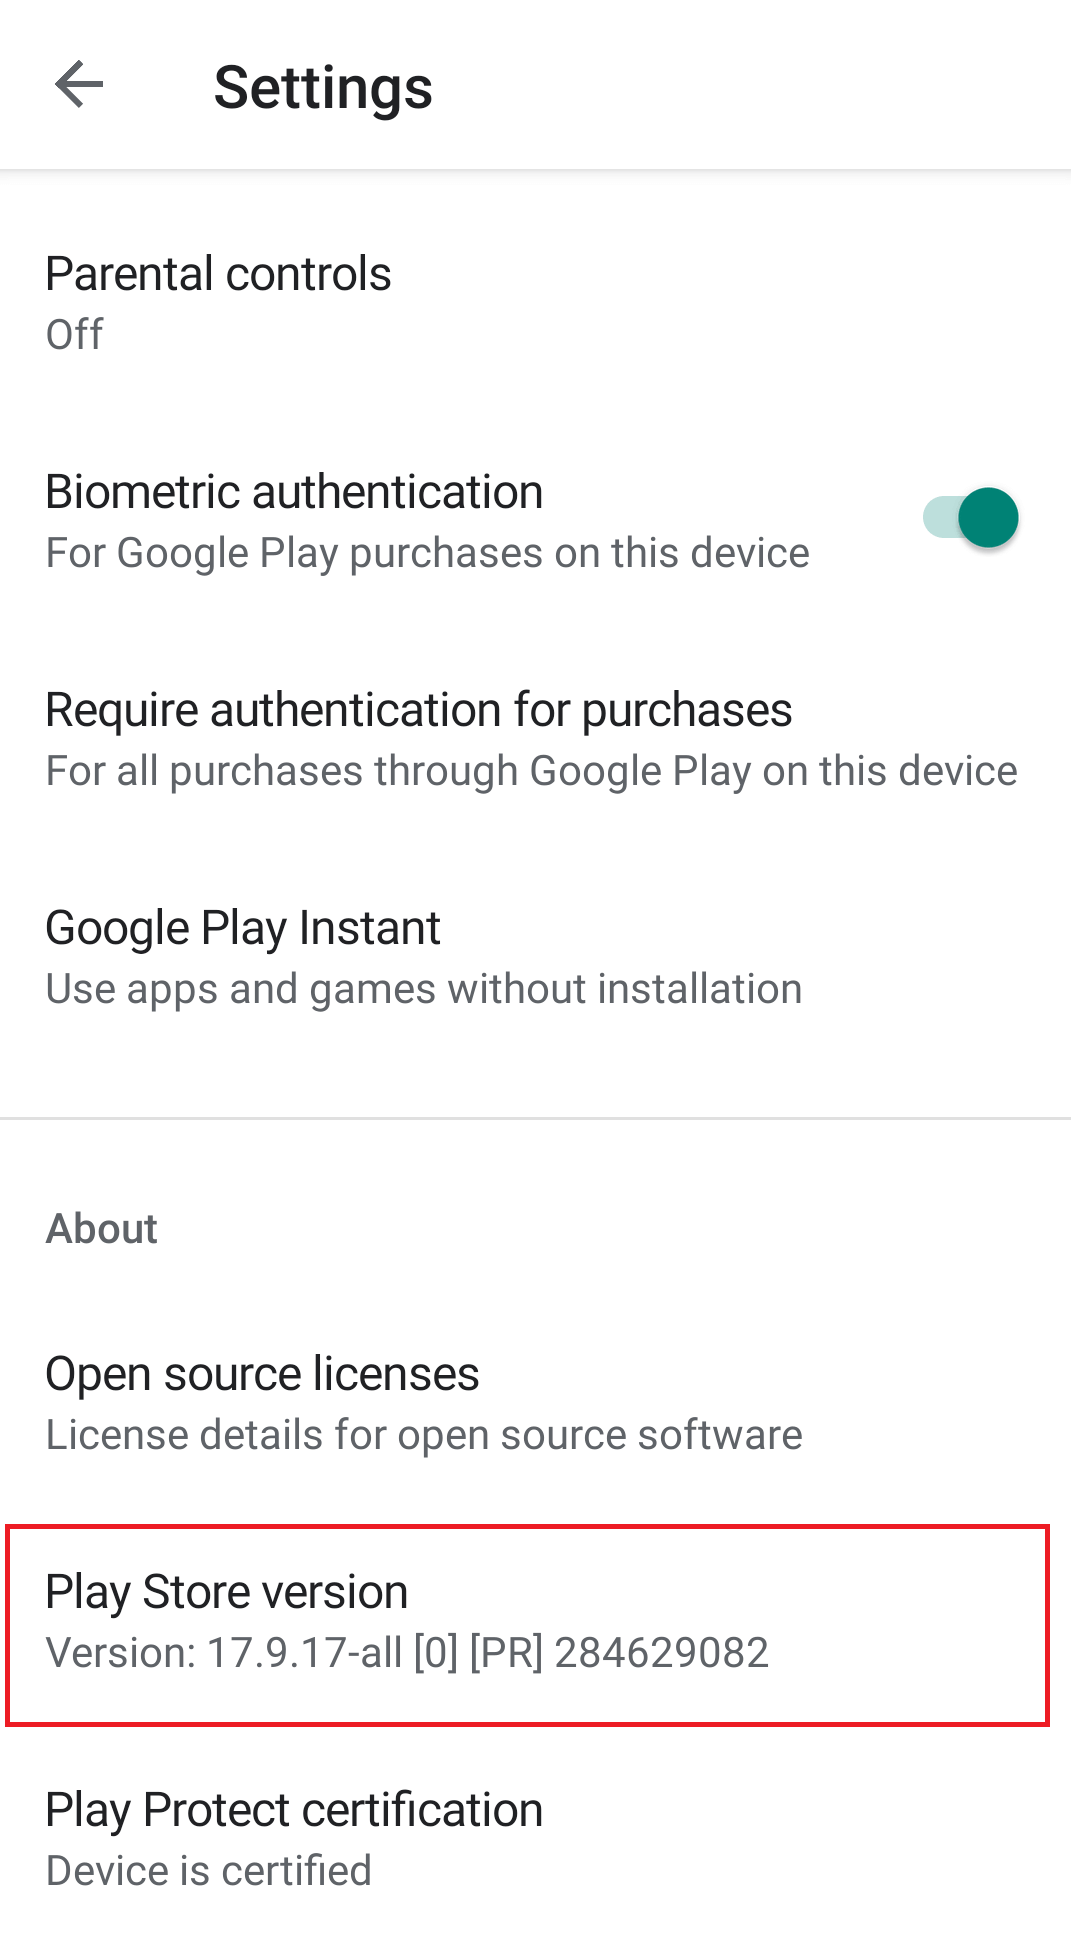 Tap on Play Store version